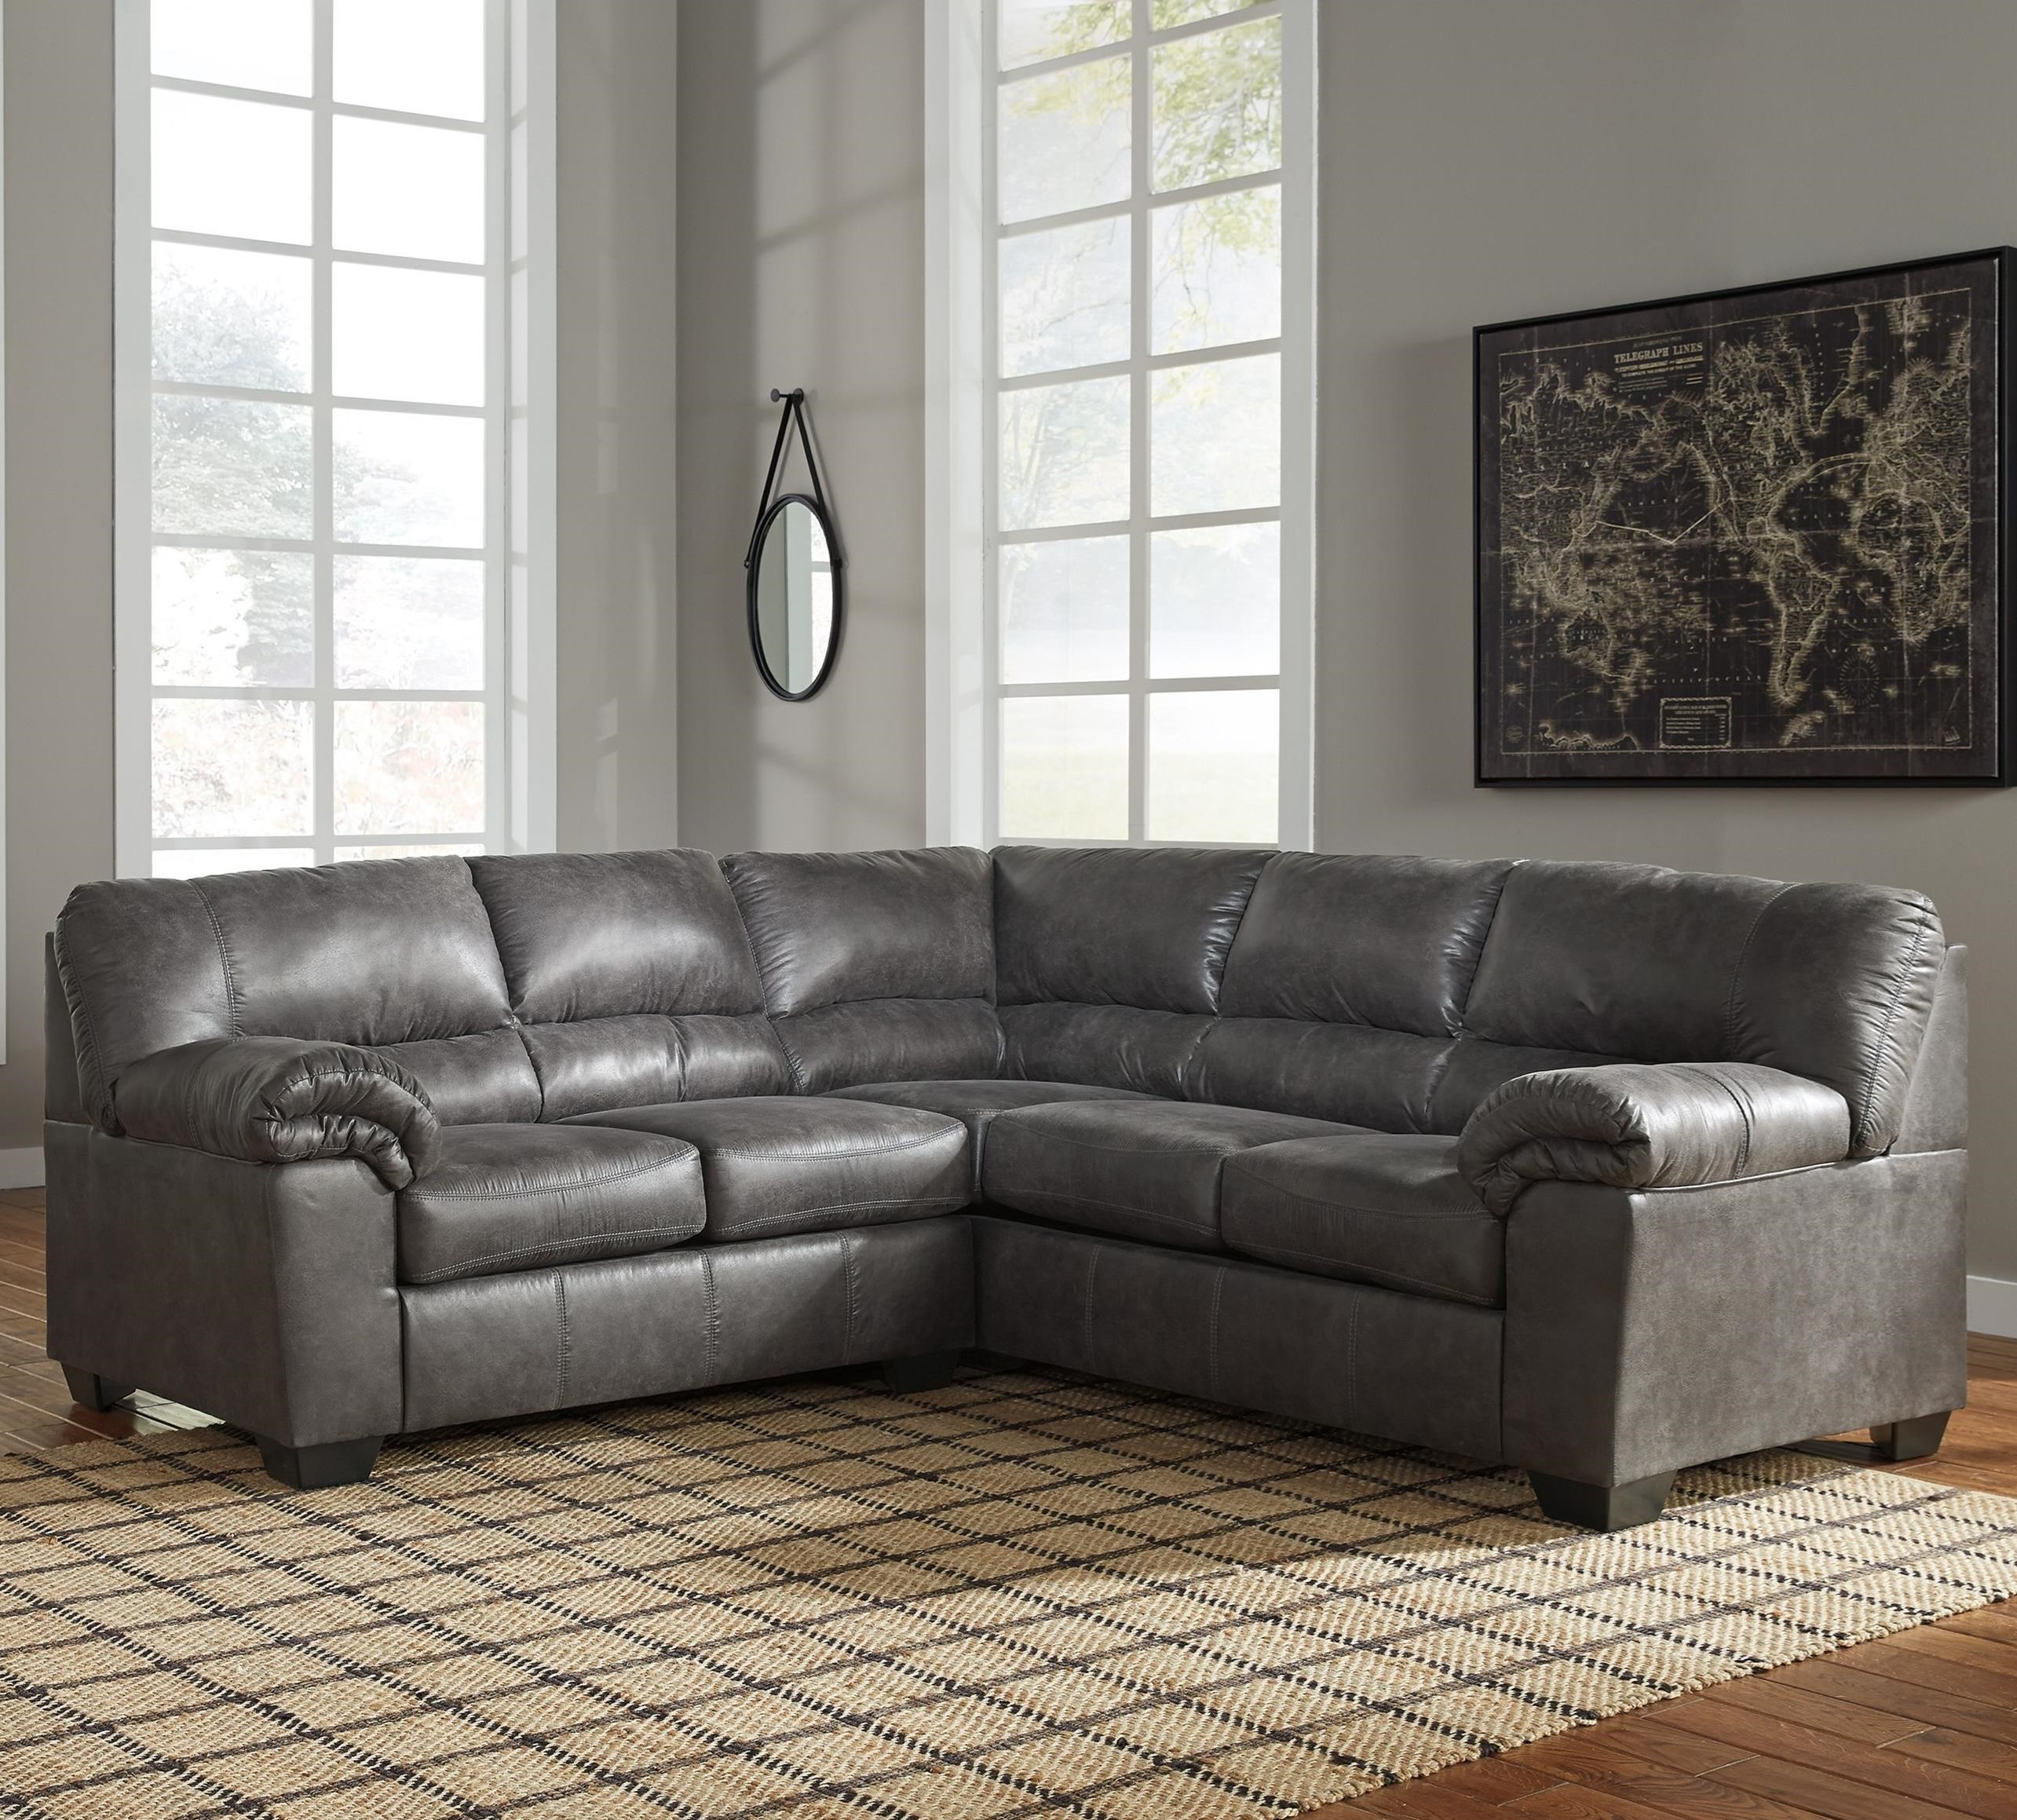 StyleLine Bladen 2 Piece Faux Leather Sectional